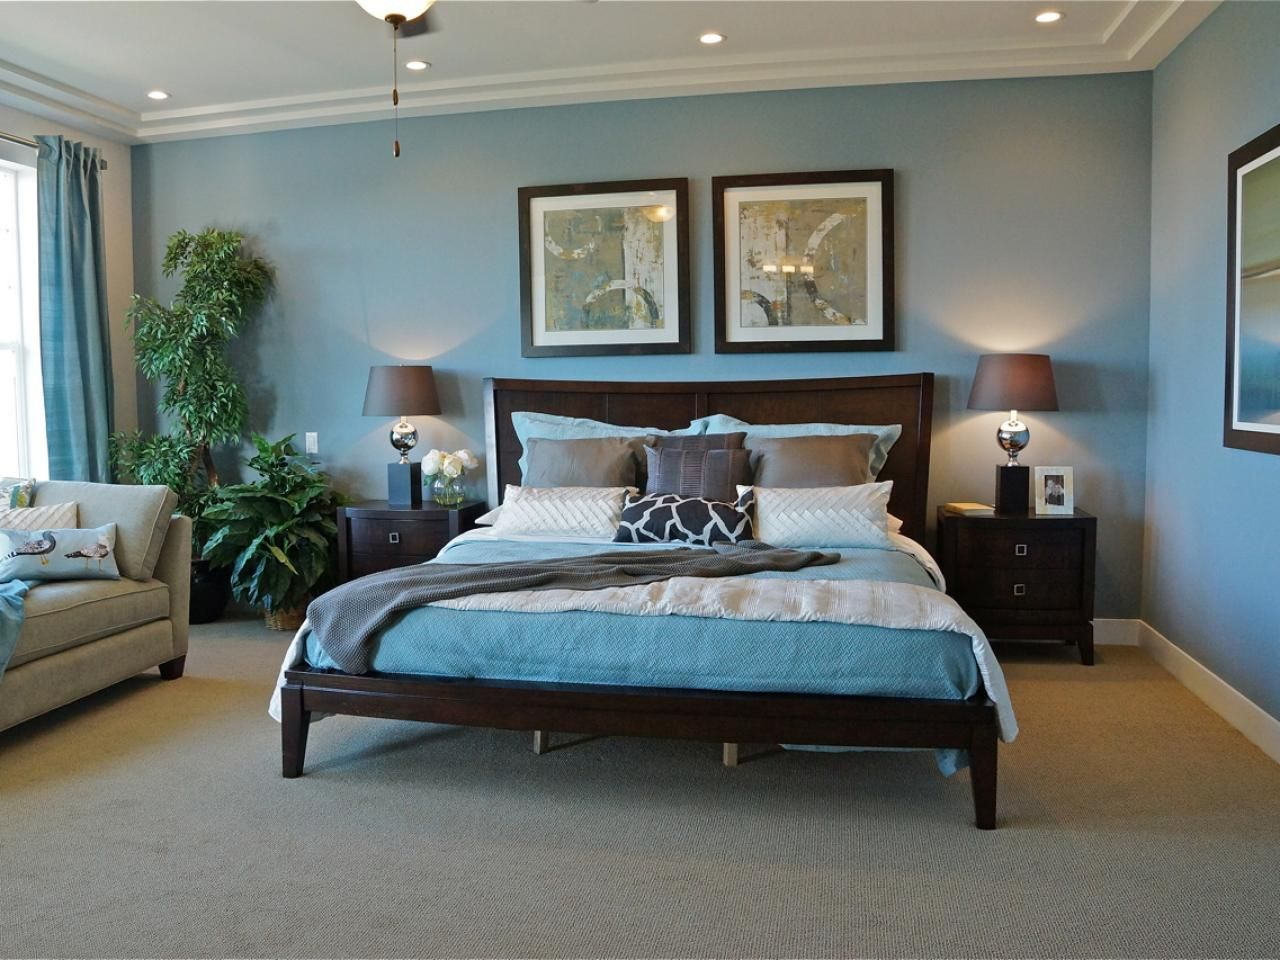 Best Soothing And Stately This Traditional Bedroom Pairs Dark Wood Furniture With Soft Blue Walls 400 x 300